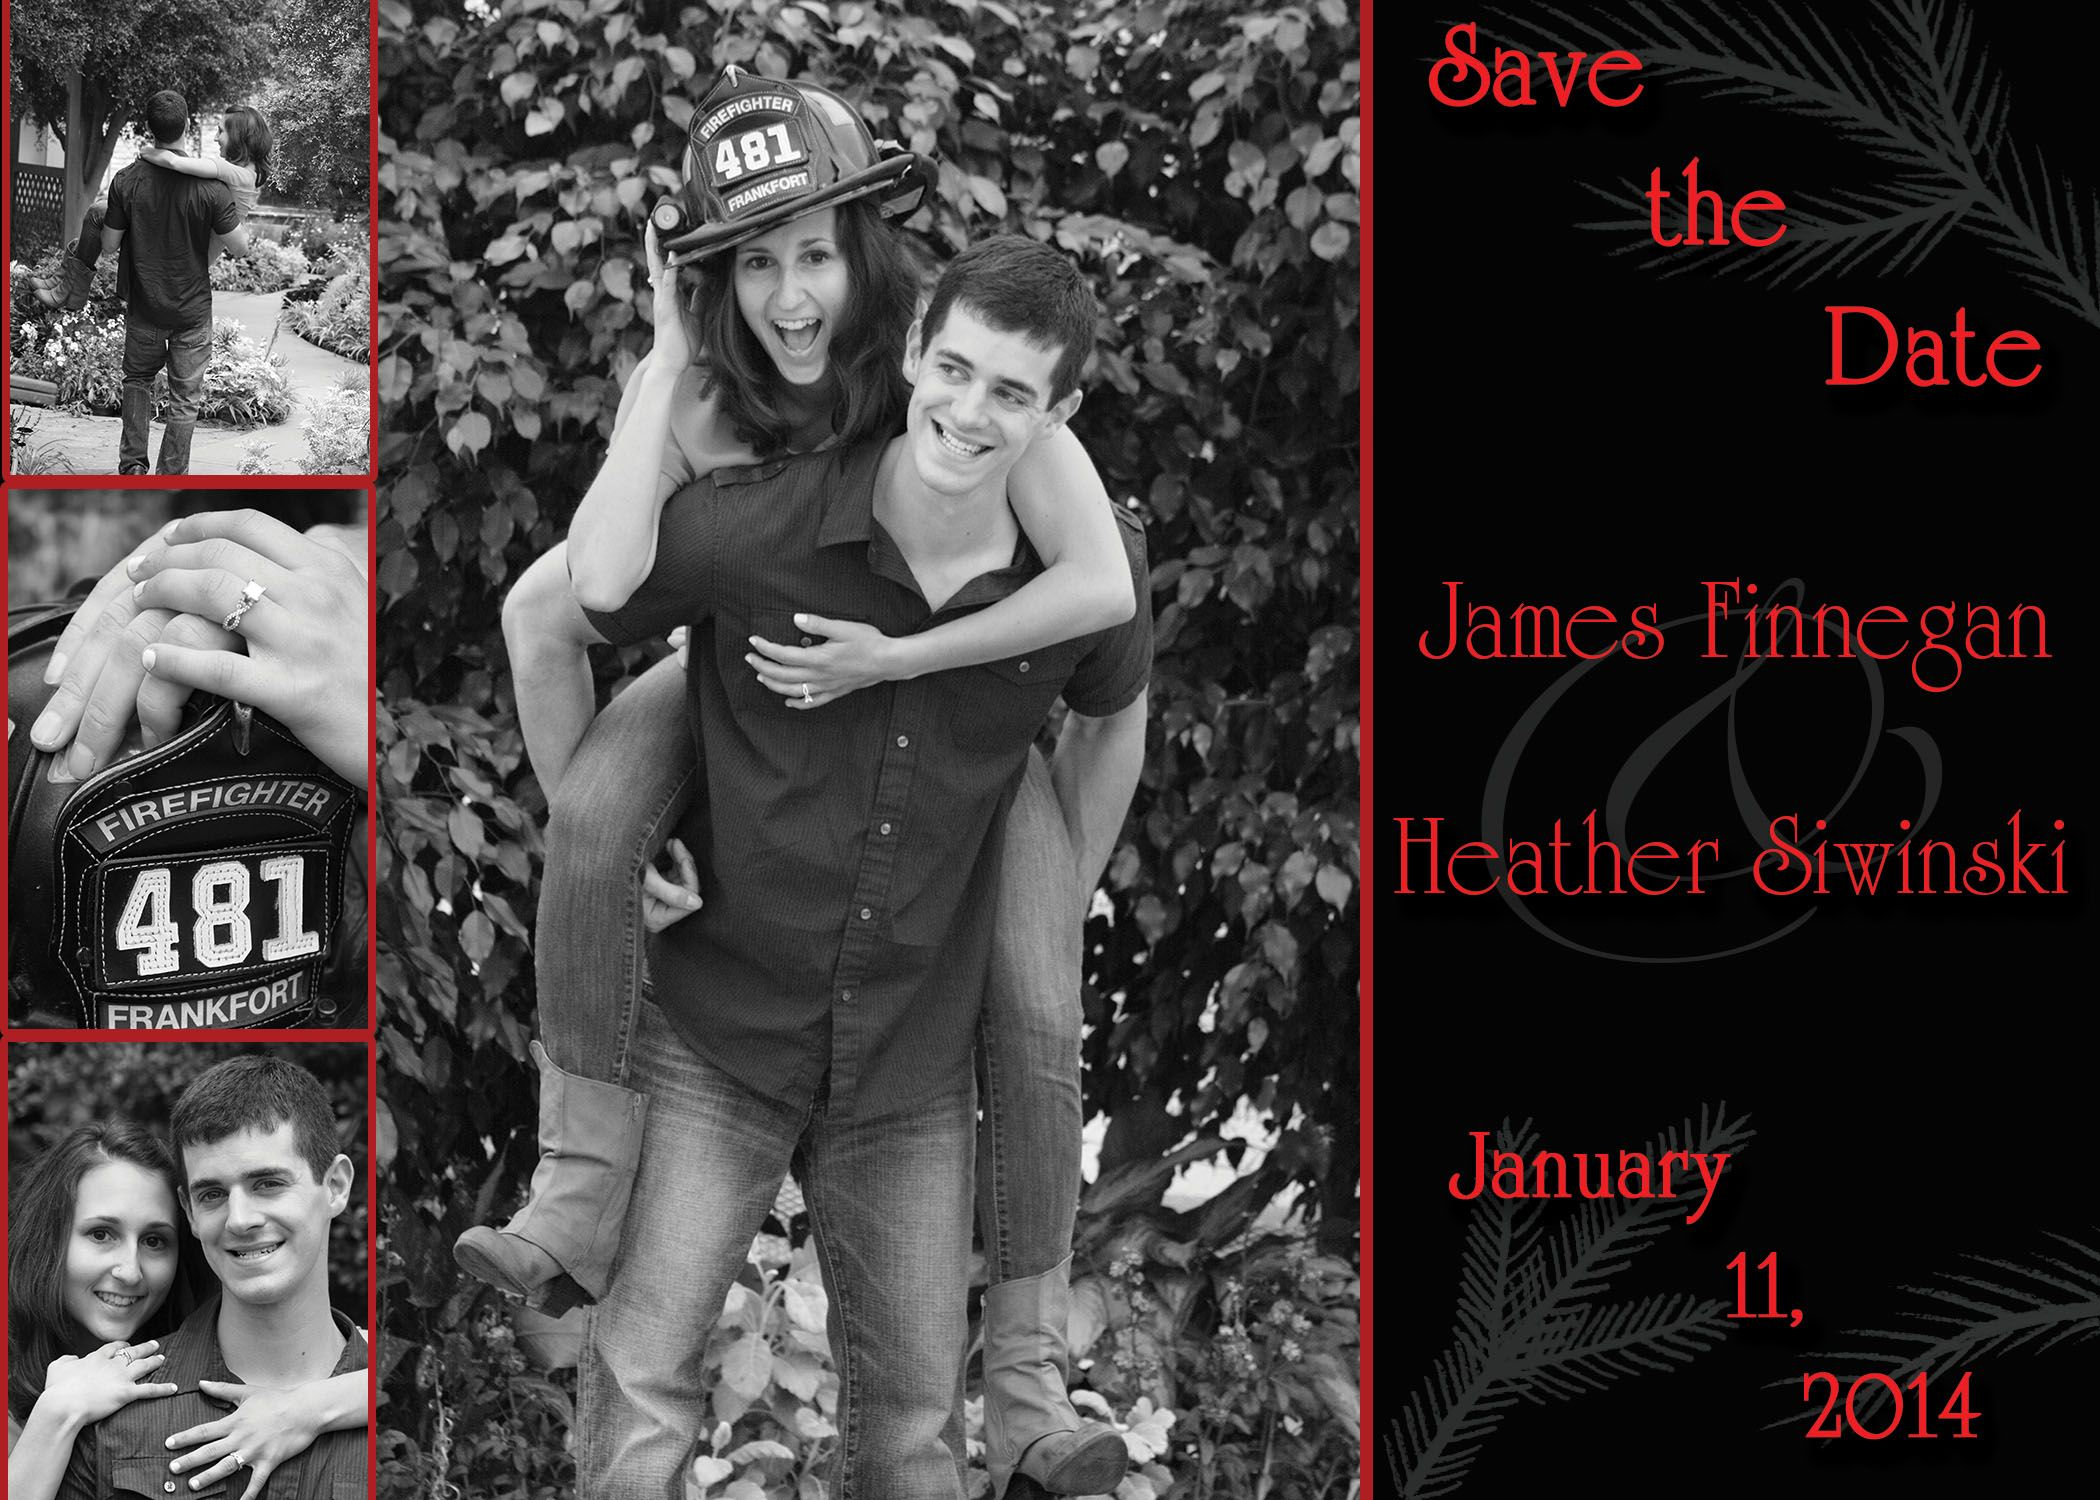 Firefighter save the date